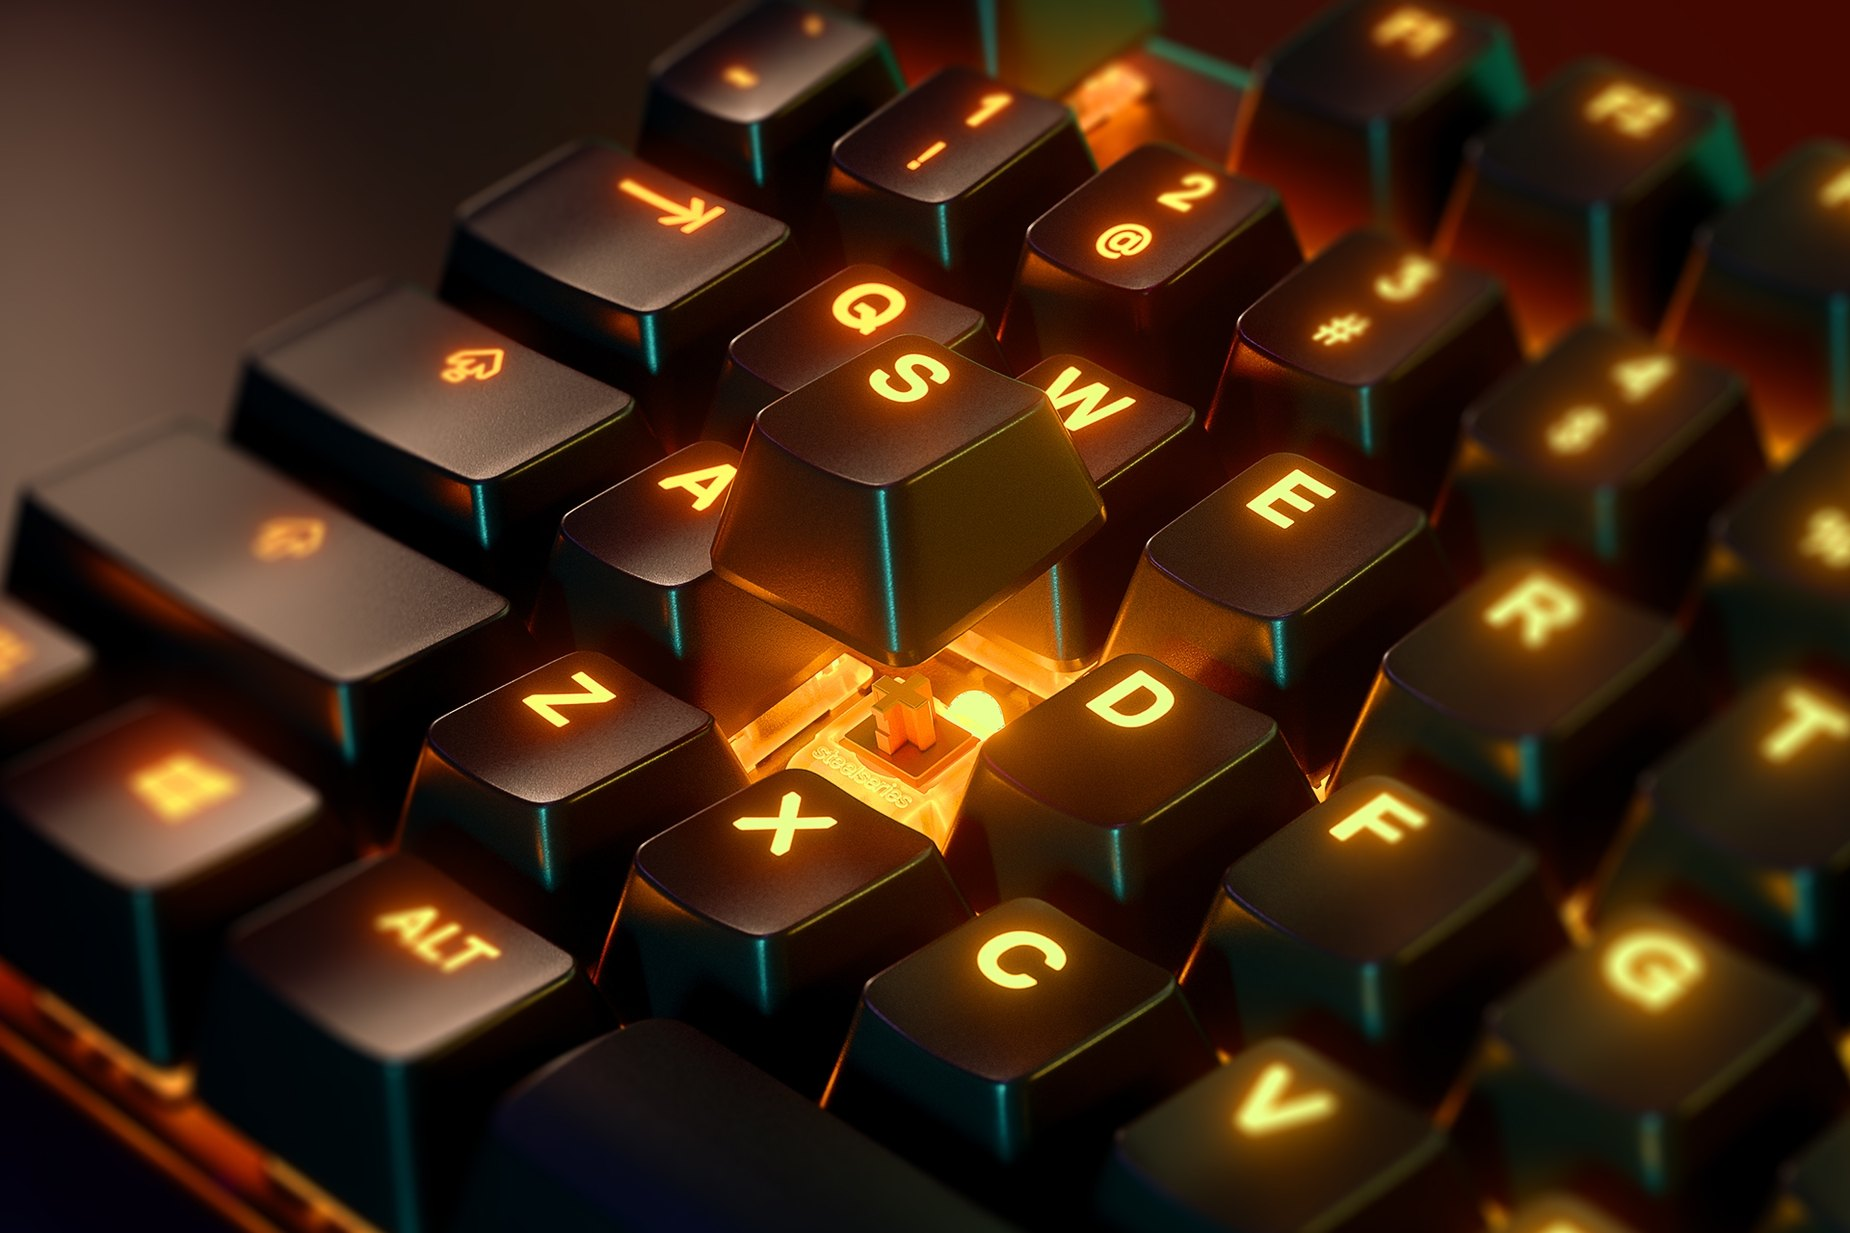 Zoomed in view of a single key on the US English-Apex 7 TKL (Brown Switch) gaming keyboard, the key is raised up to show the SteelSeries QX2 Mechanical RGB Switch underneath